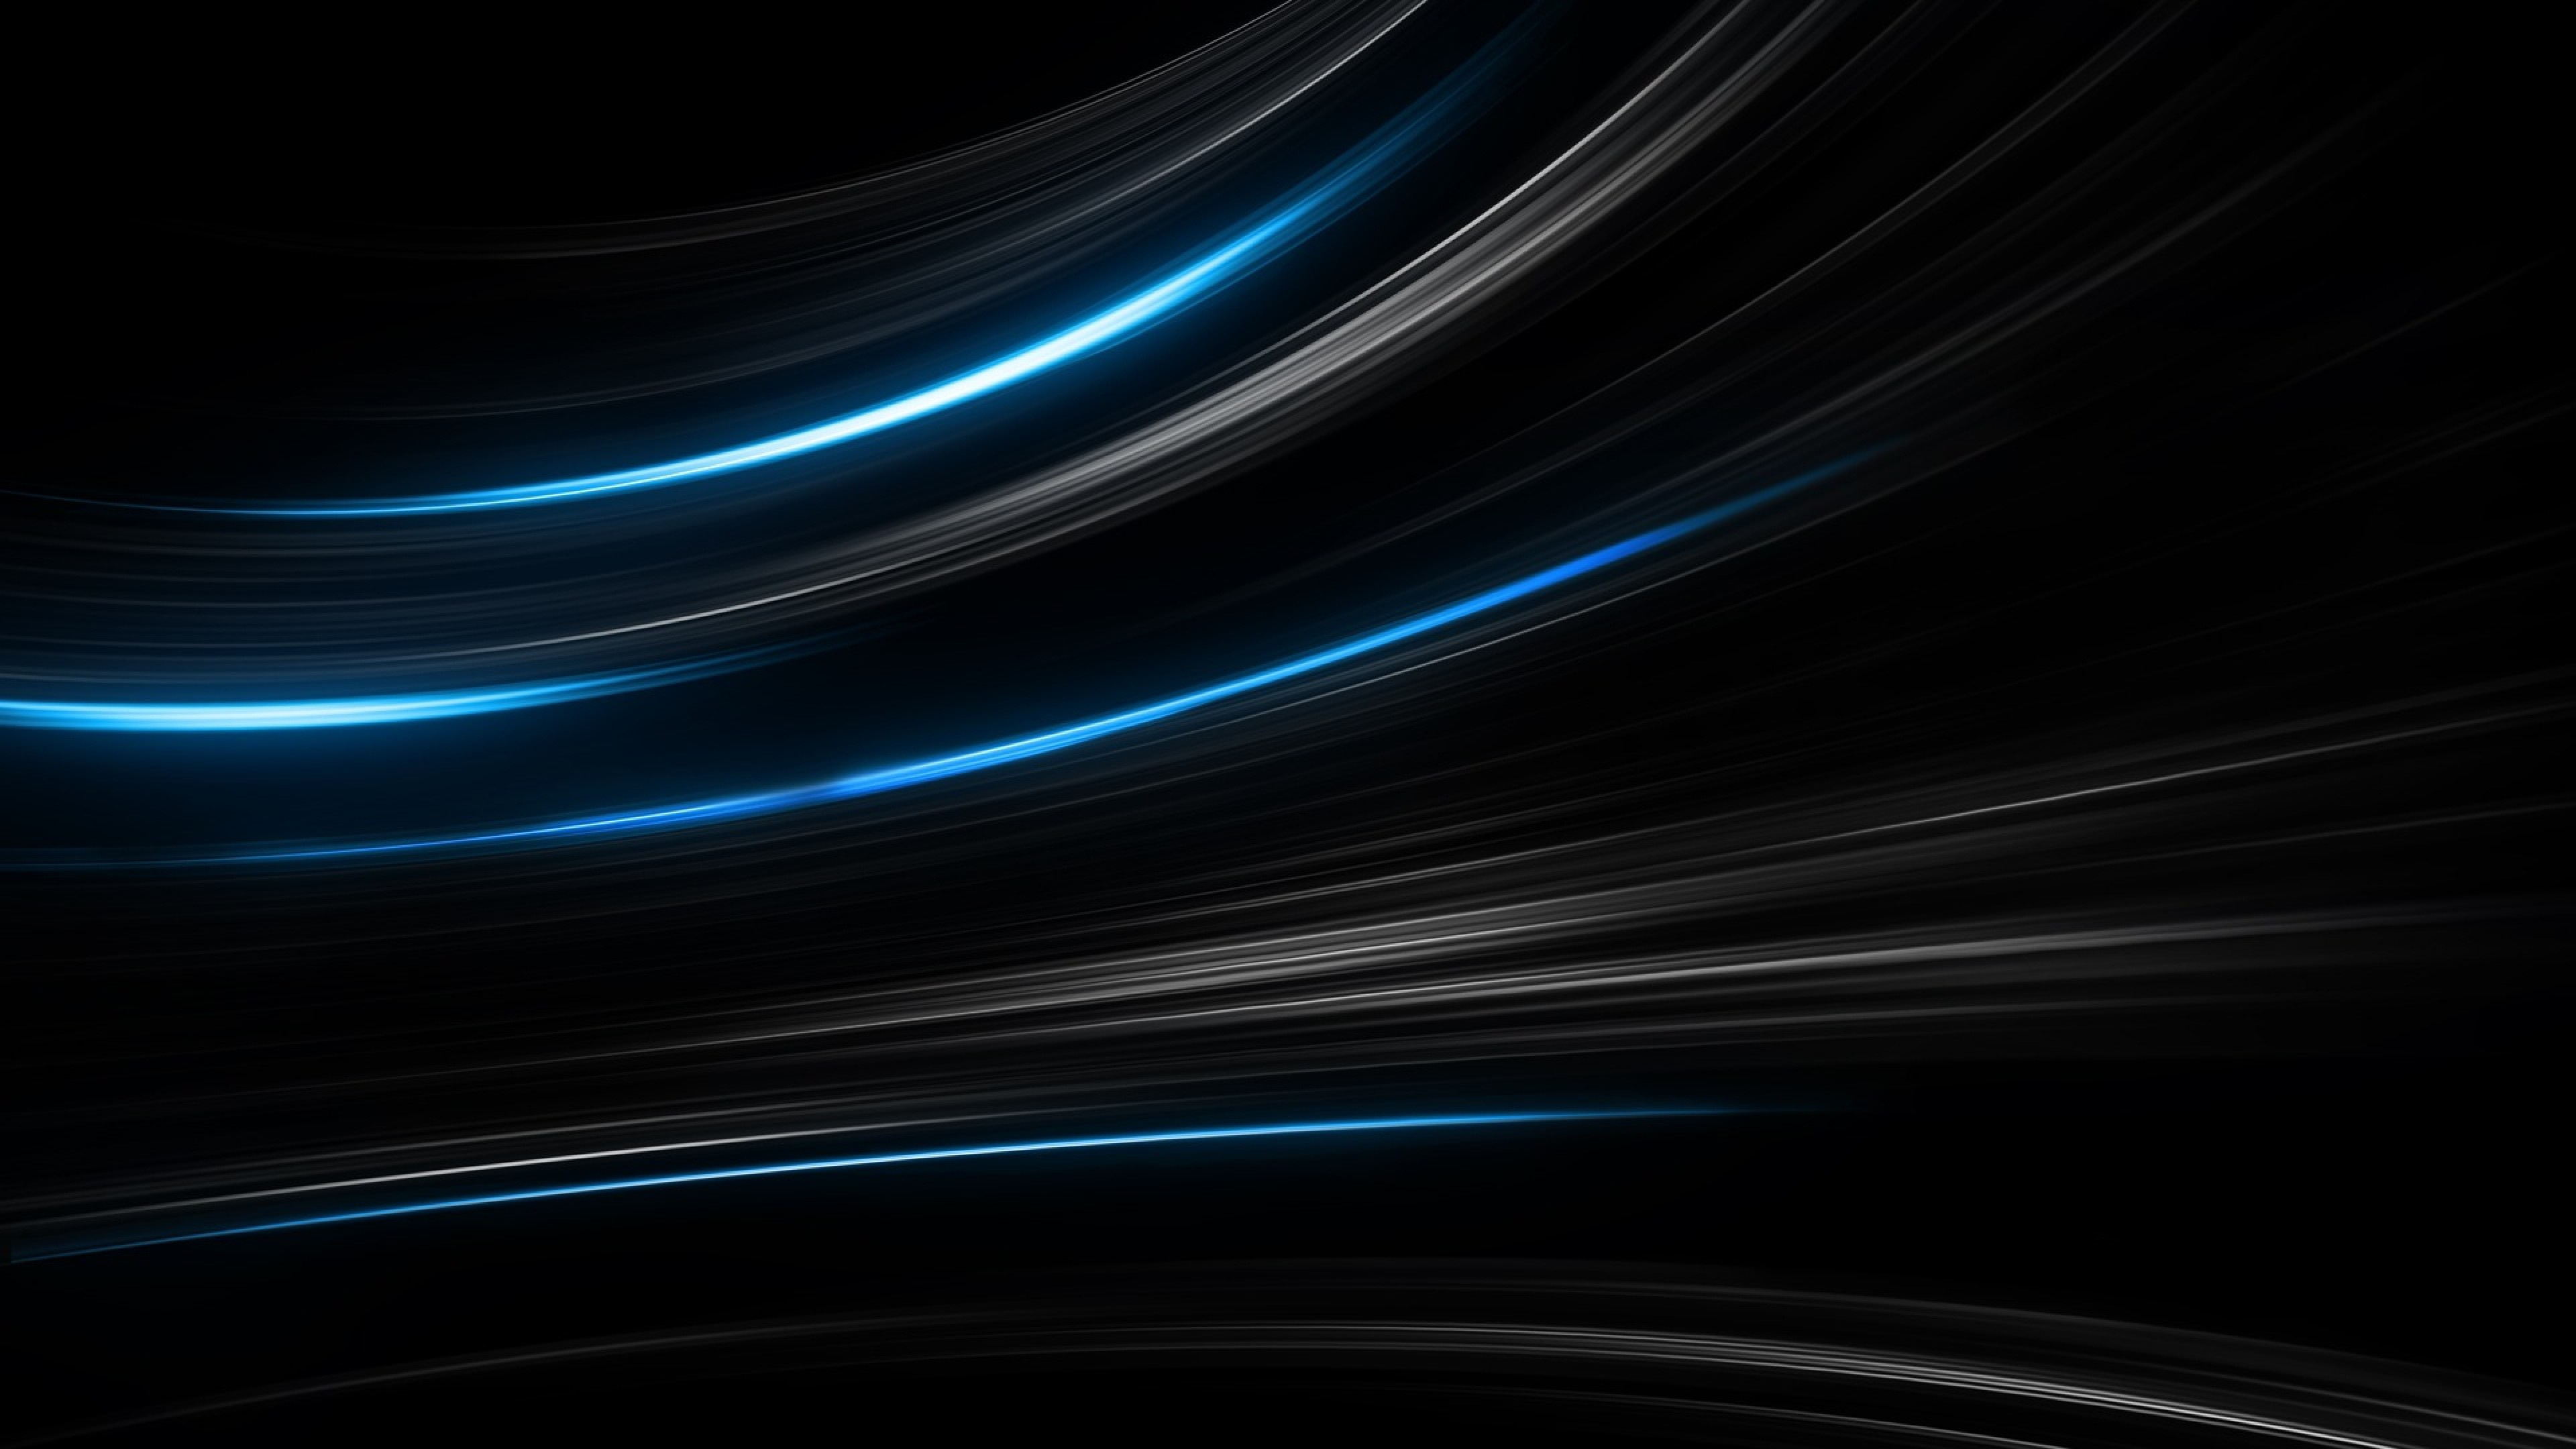 Black and Blue Abstract Stripes 4K Wallpaper